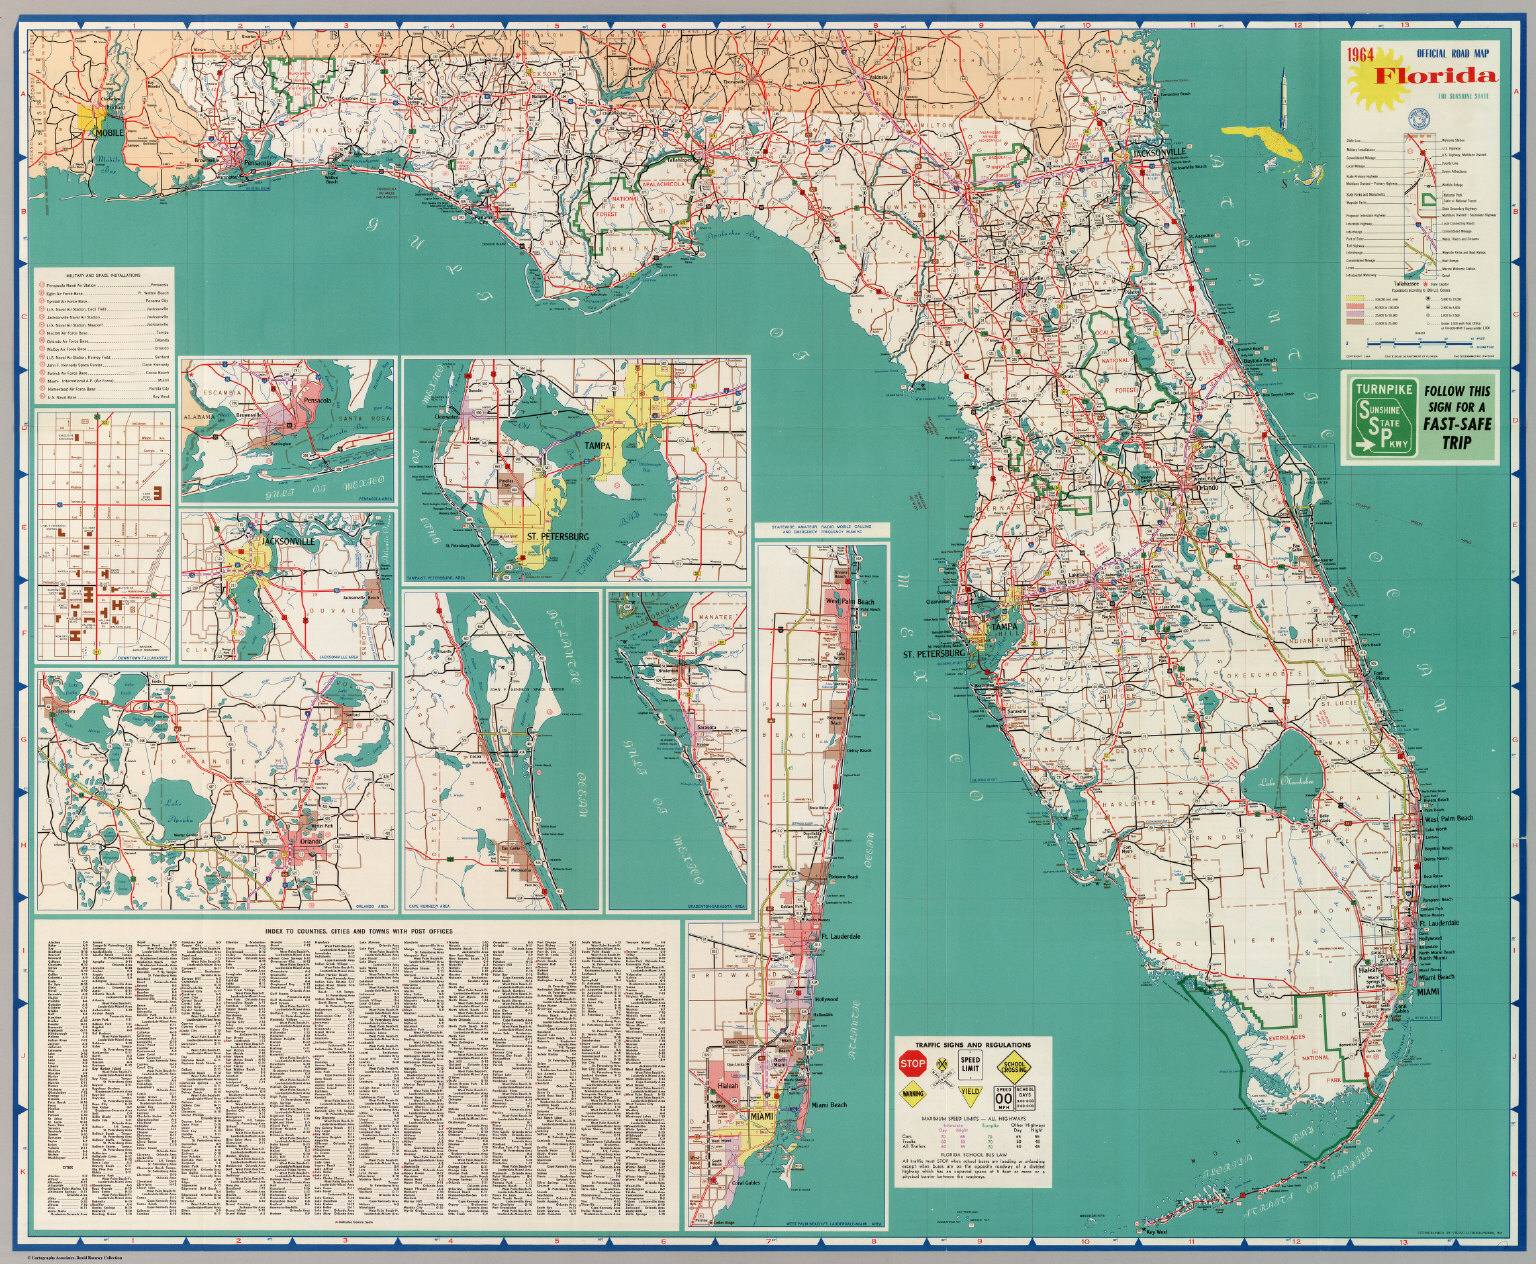 Flordia State Map.Official Road Map Florida The Sunshine State David Rumsey